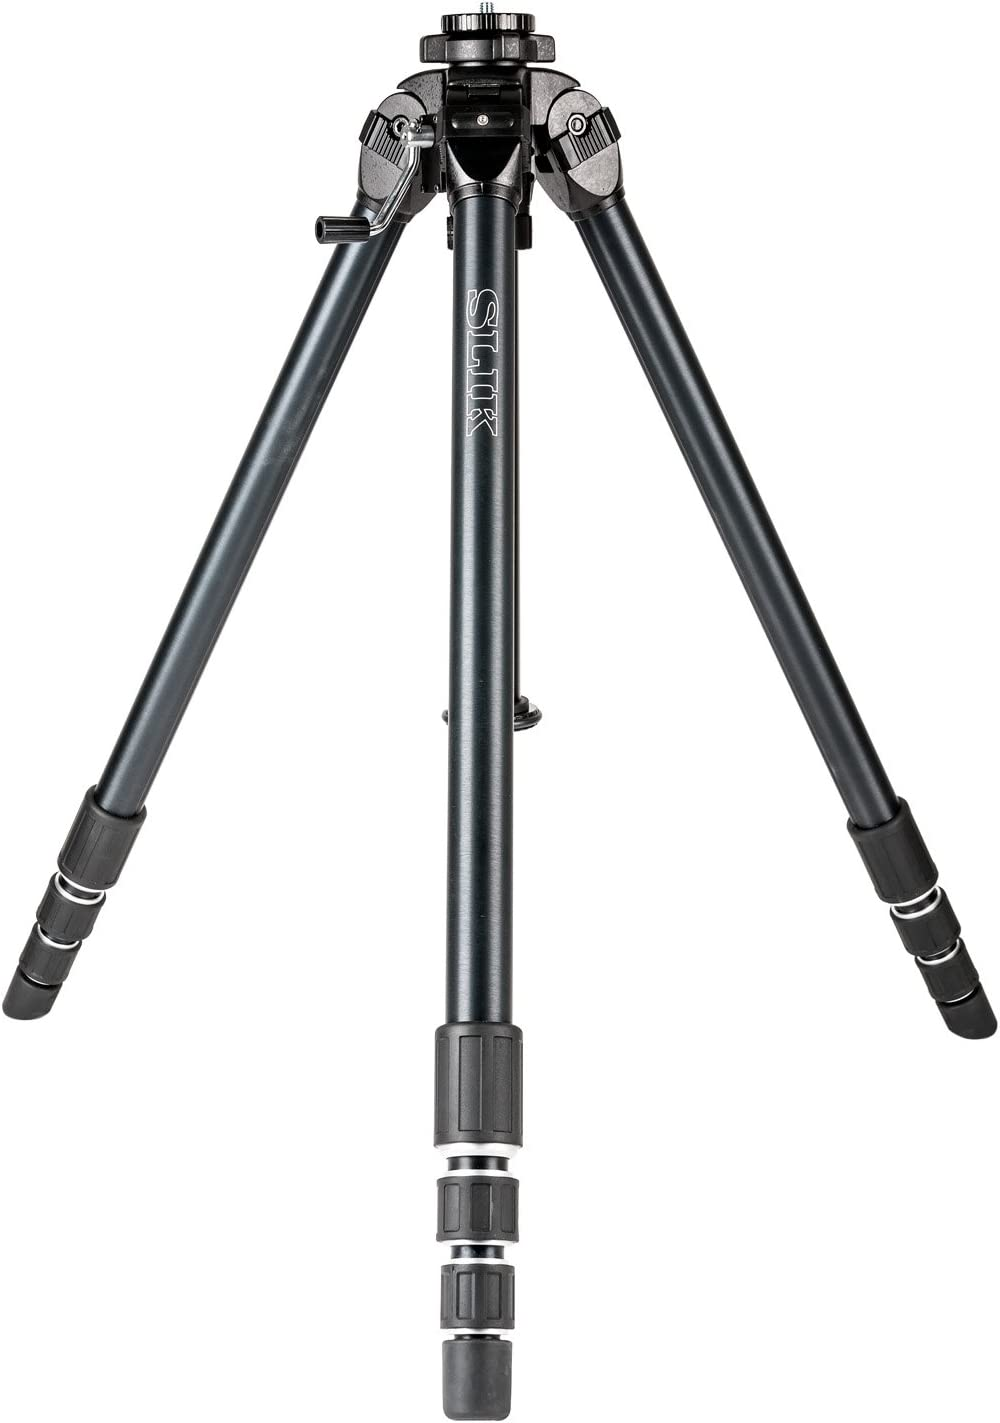 SLIK Professional 4 Tripod Legs - Supports 22 lb, for Mirrorless/DSLR Sony Nikon Canon Fuji Cameras and More - Black (619-975)